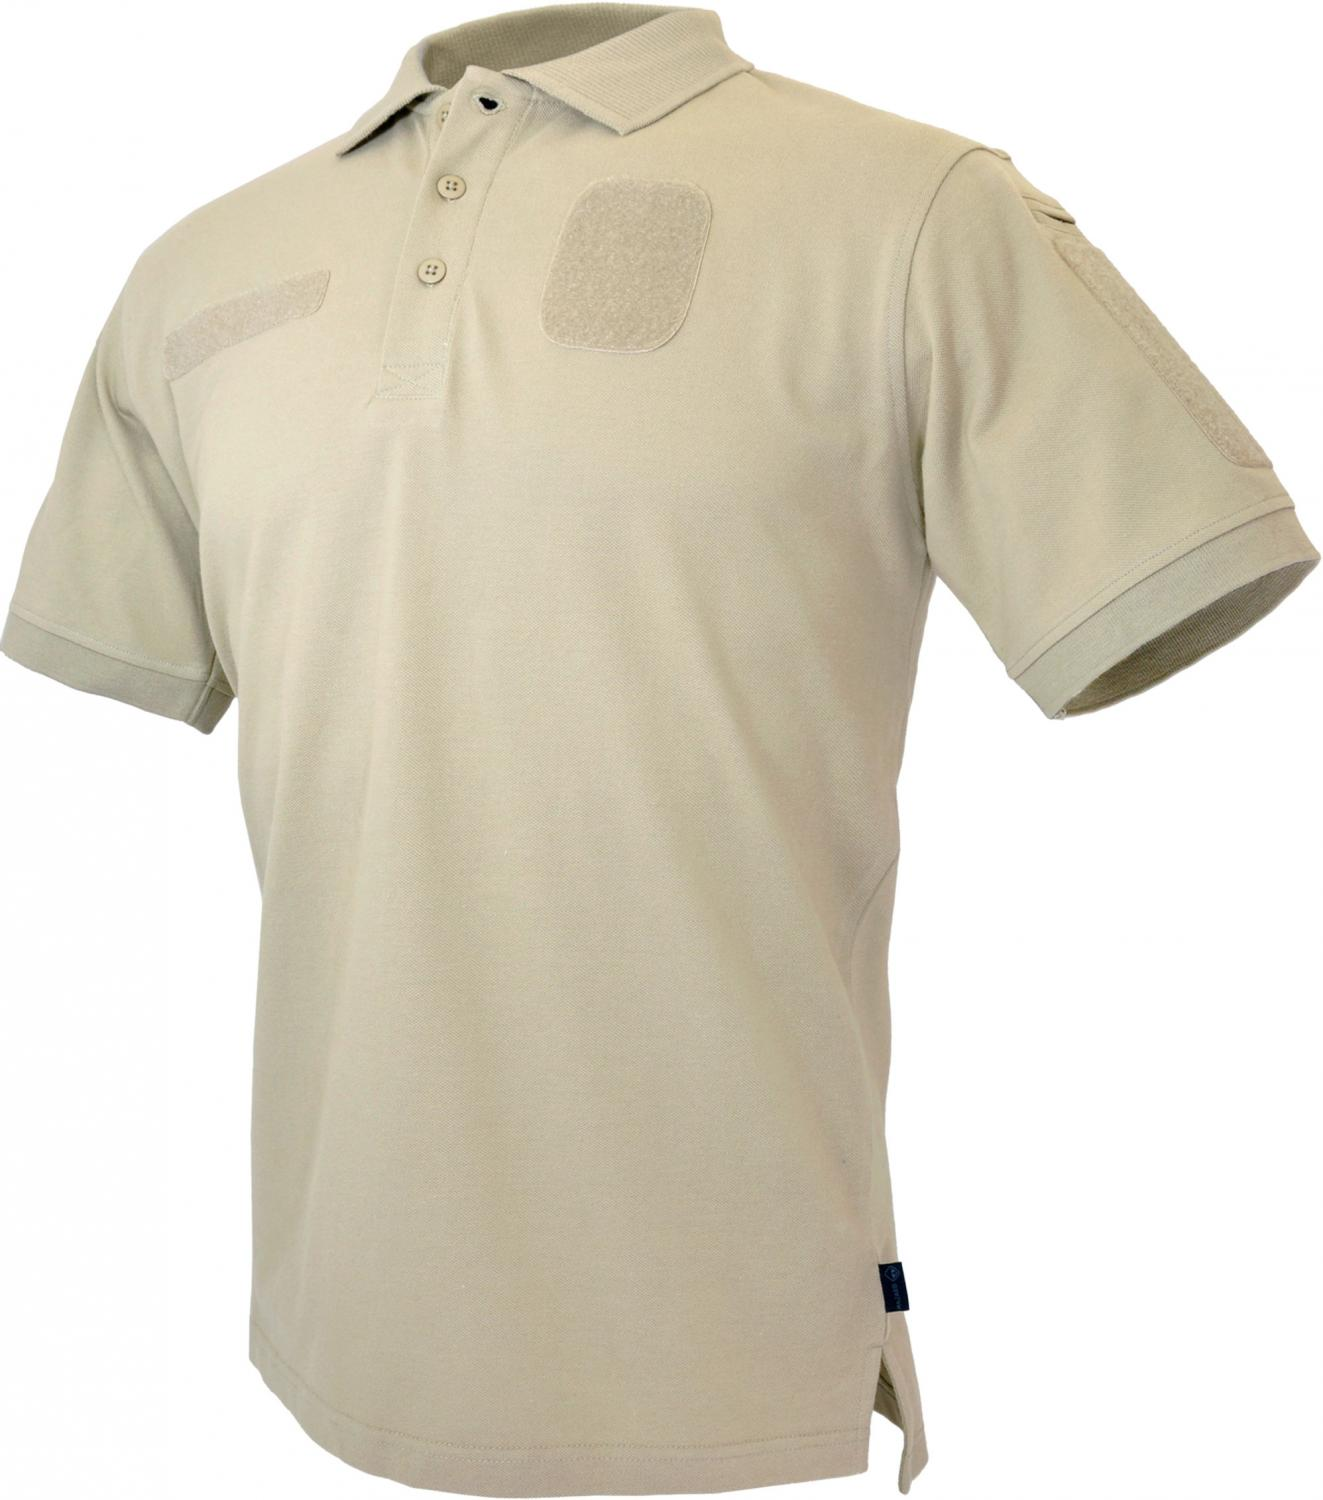 Hazard 4 Loaded I.D. Centric Battle Polo, Tan, 3X Large